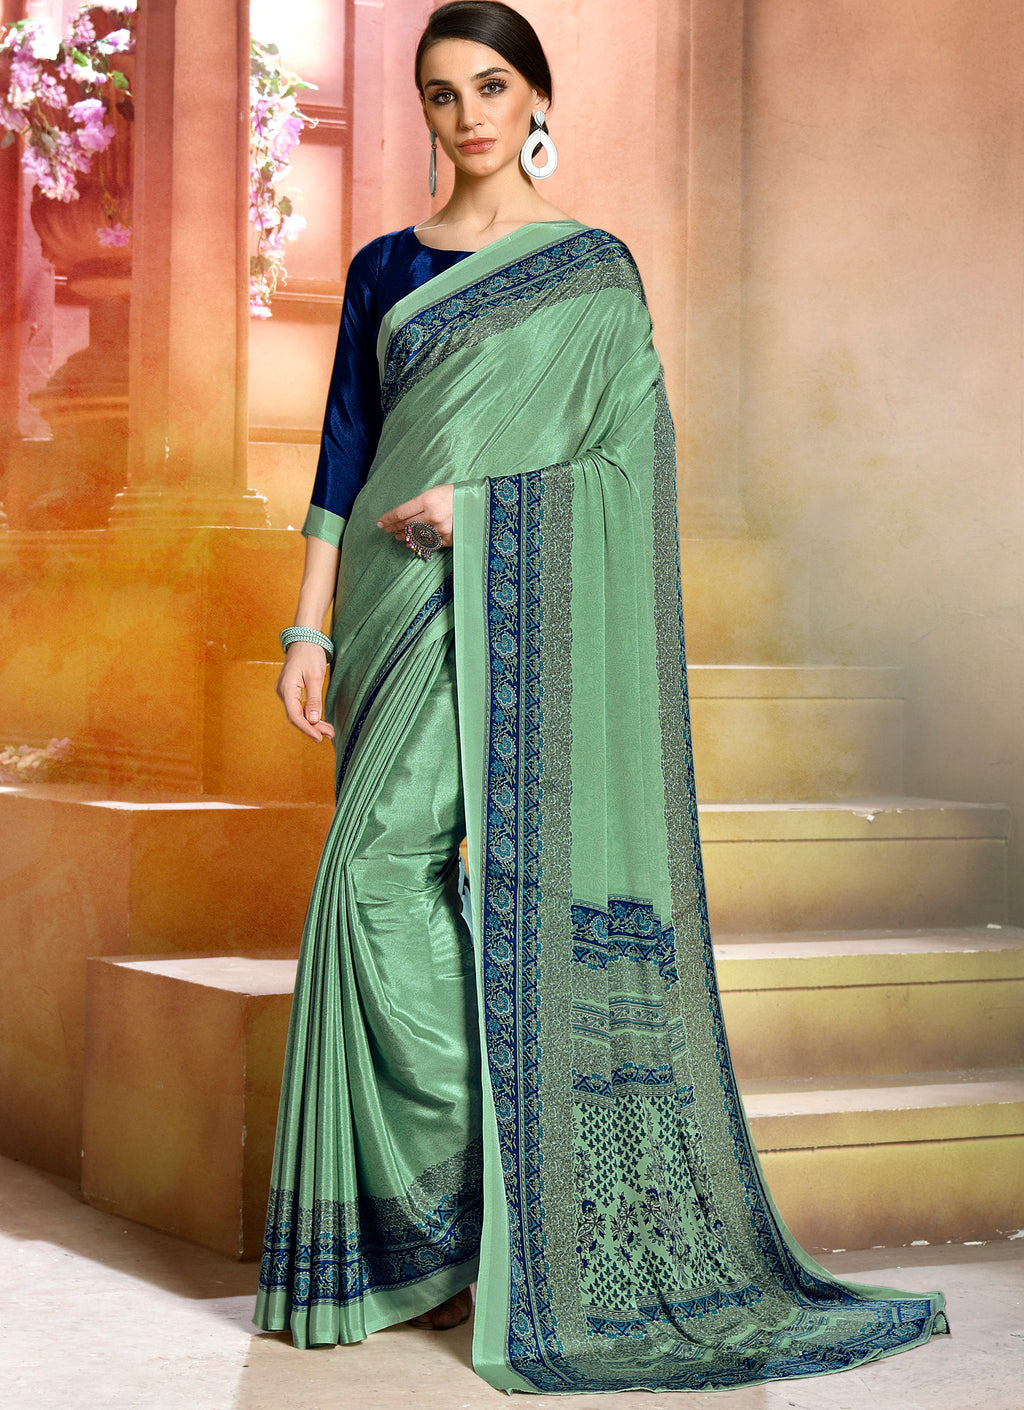 Pastel Green Color Crepe Soft & Light Weight Printed Sarees NYF-7276